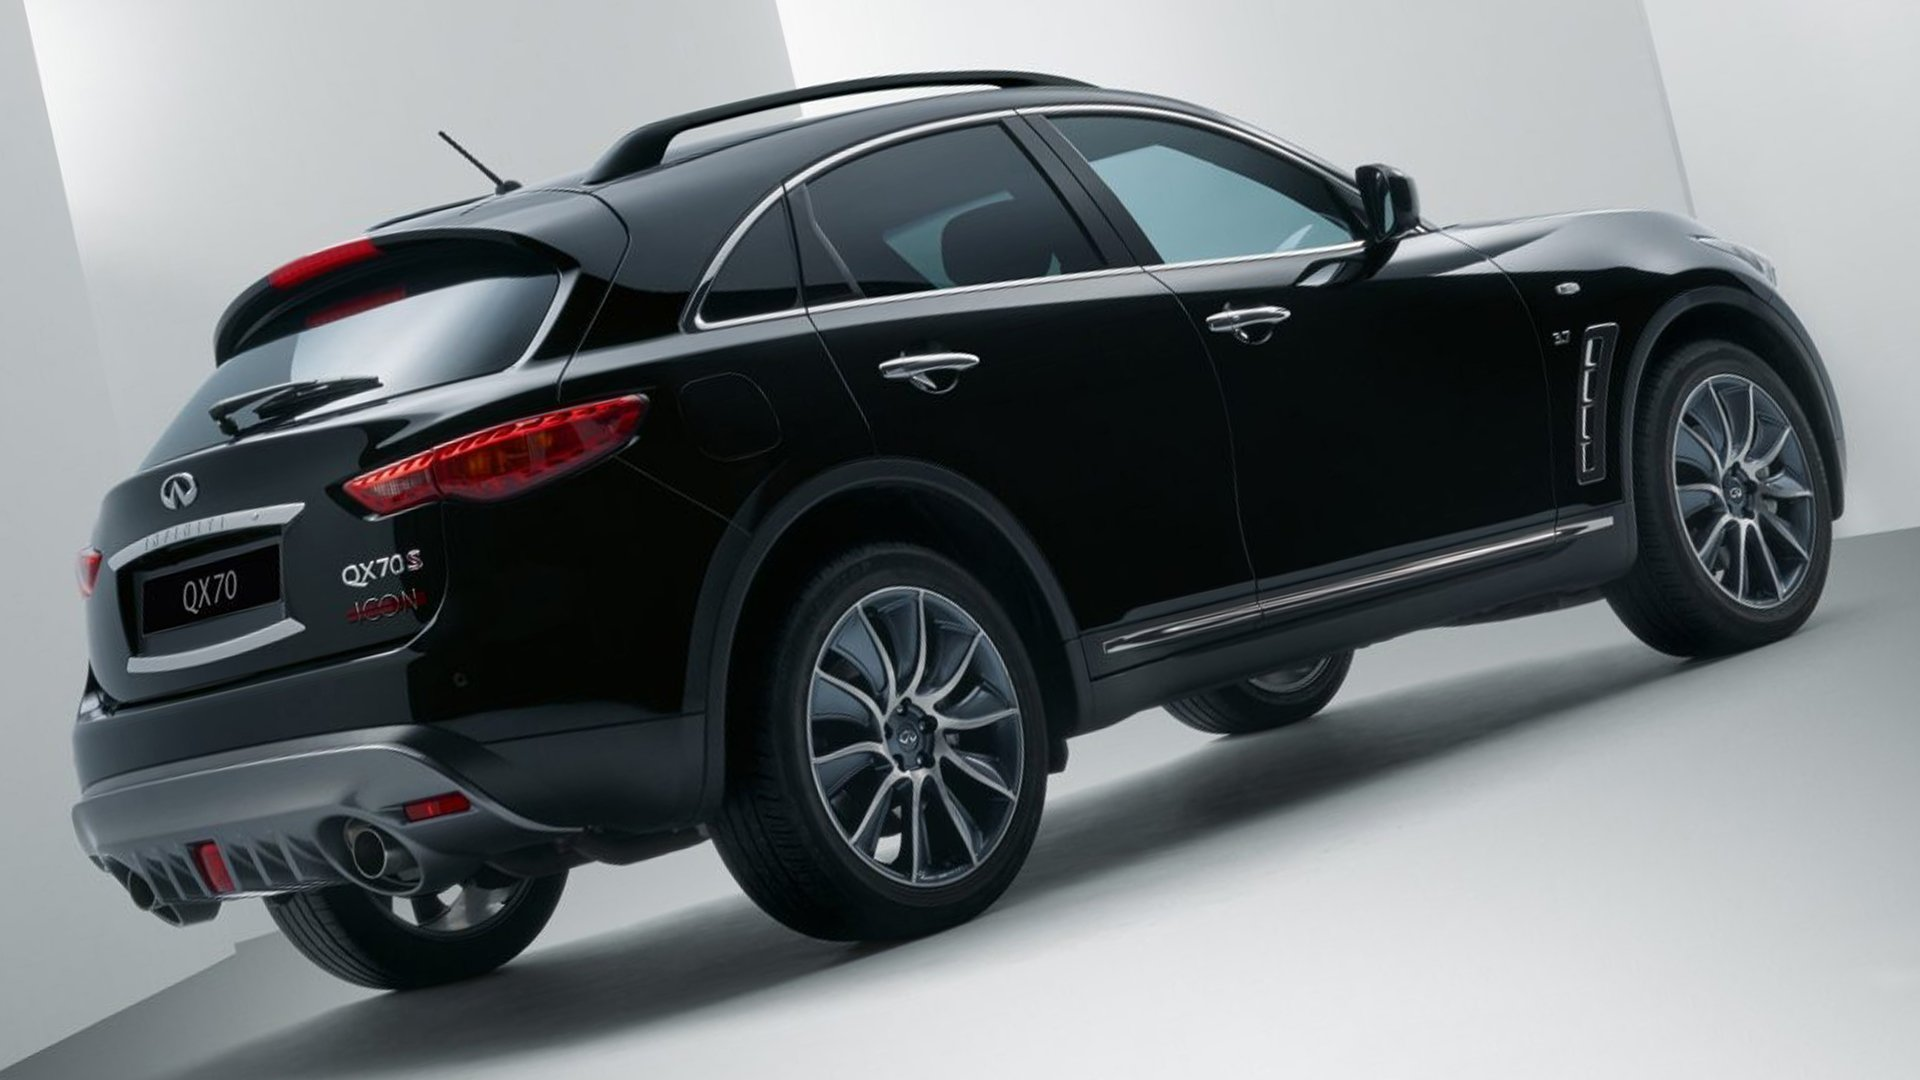 New 2019 Infiniti QX70 Review